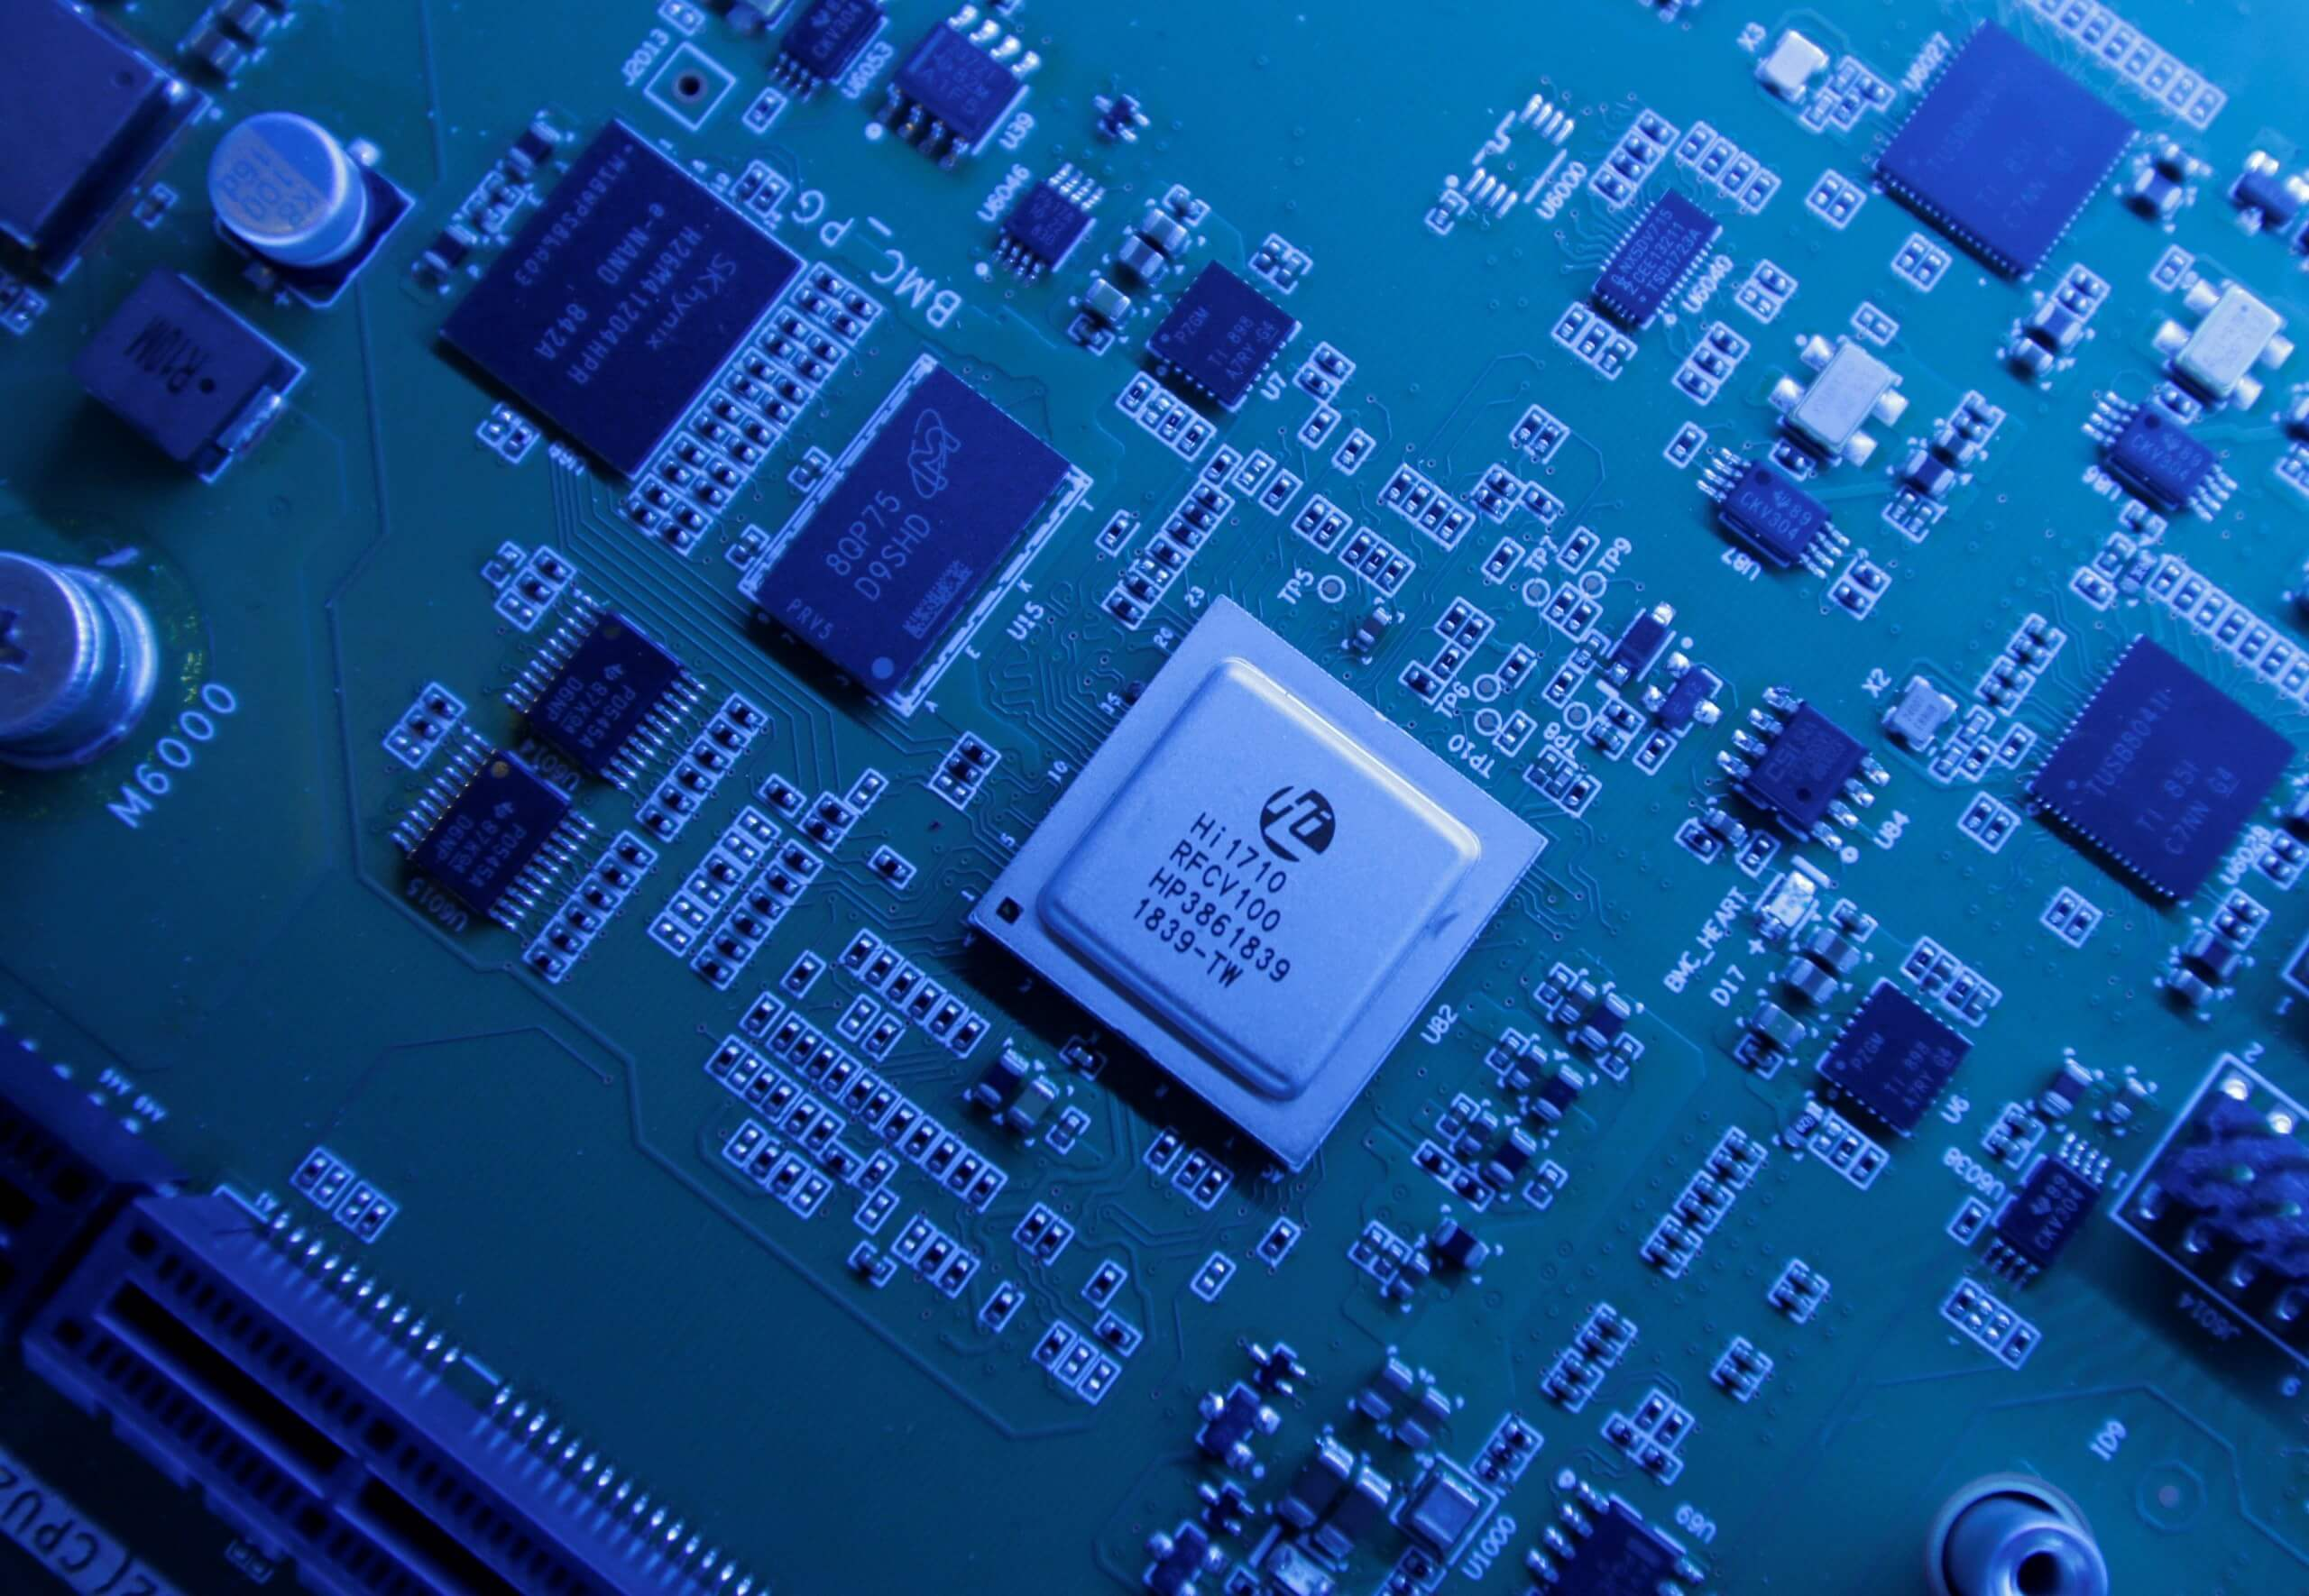 Researcher says millions of IoT and surveillance devices that use HiSilicon chips have a trivial backdoor